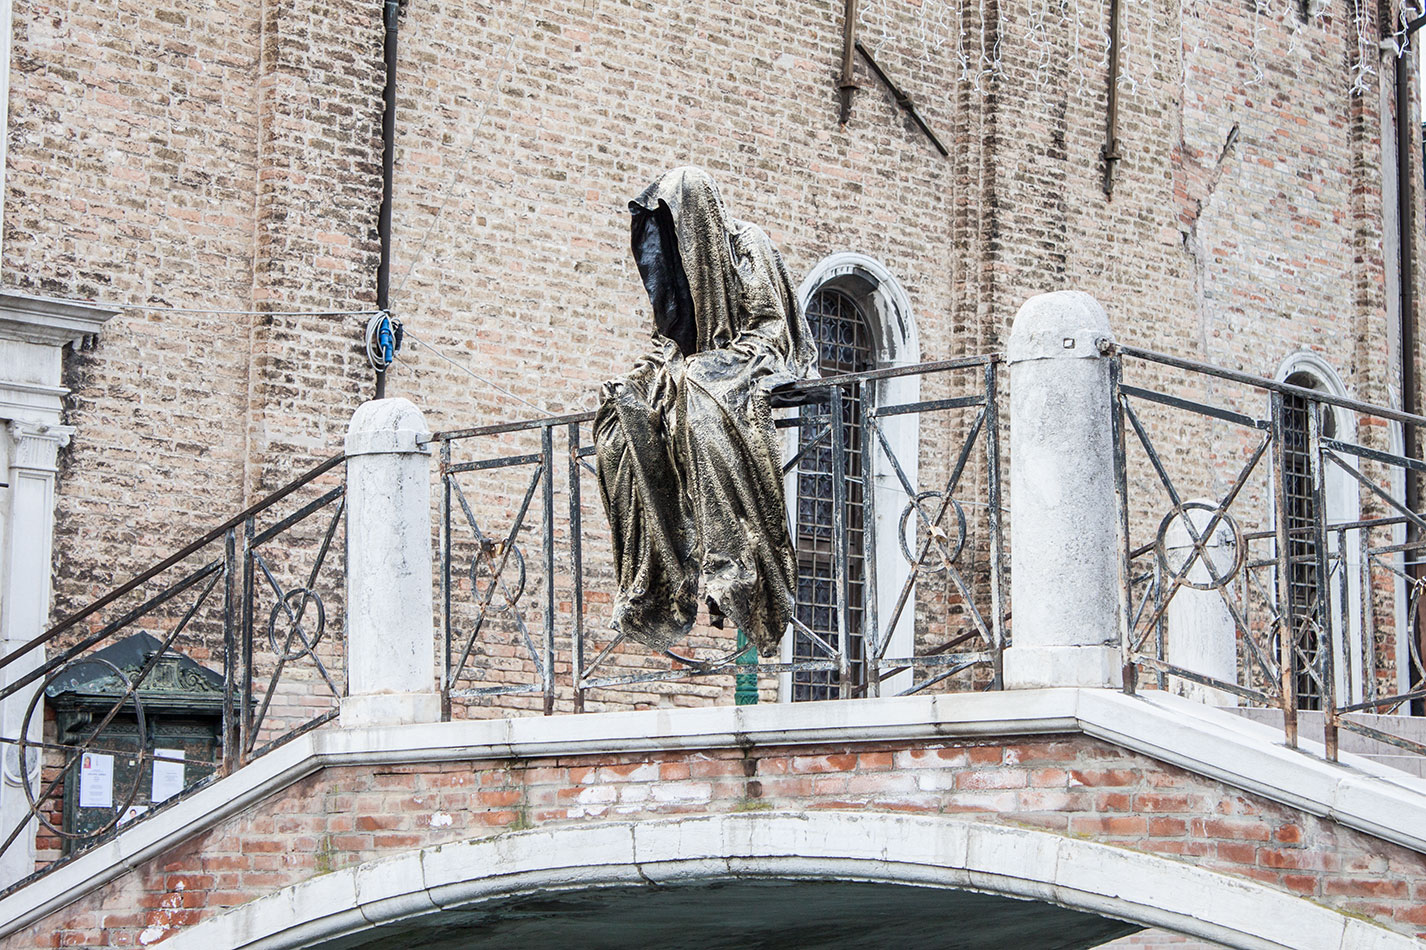 biennale-art-italia-venice-murano-glas-berengo-show-guardians-of-time-manfred-kielnhofer-public-contemporary-art-sculpture-design-7223